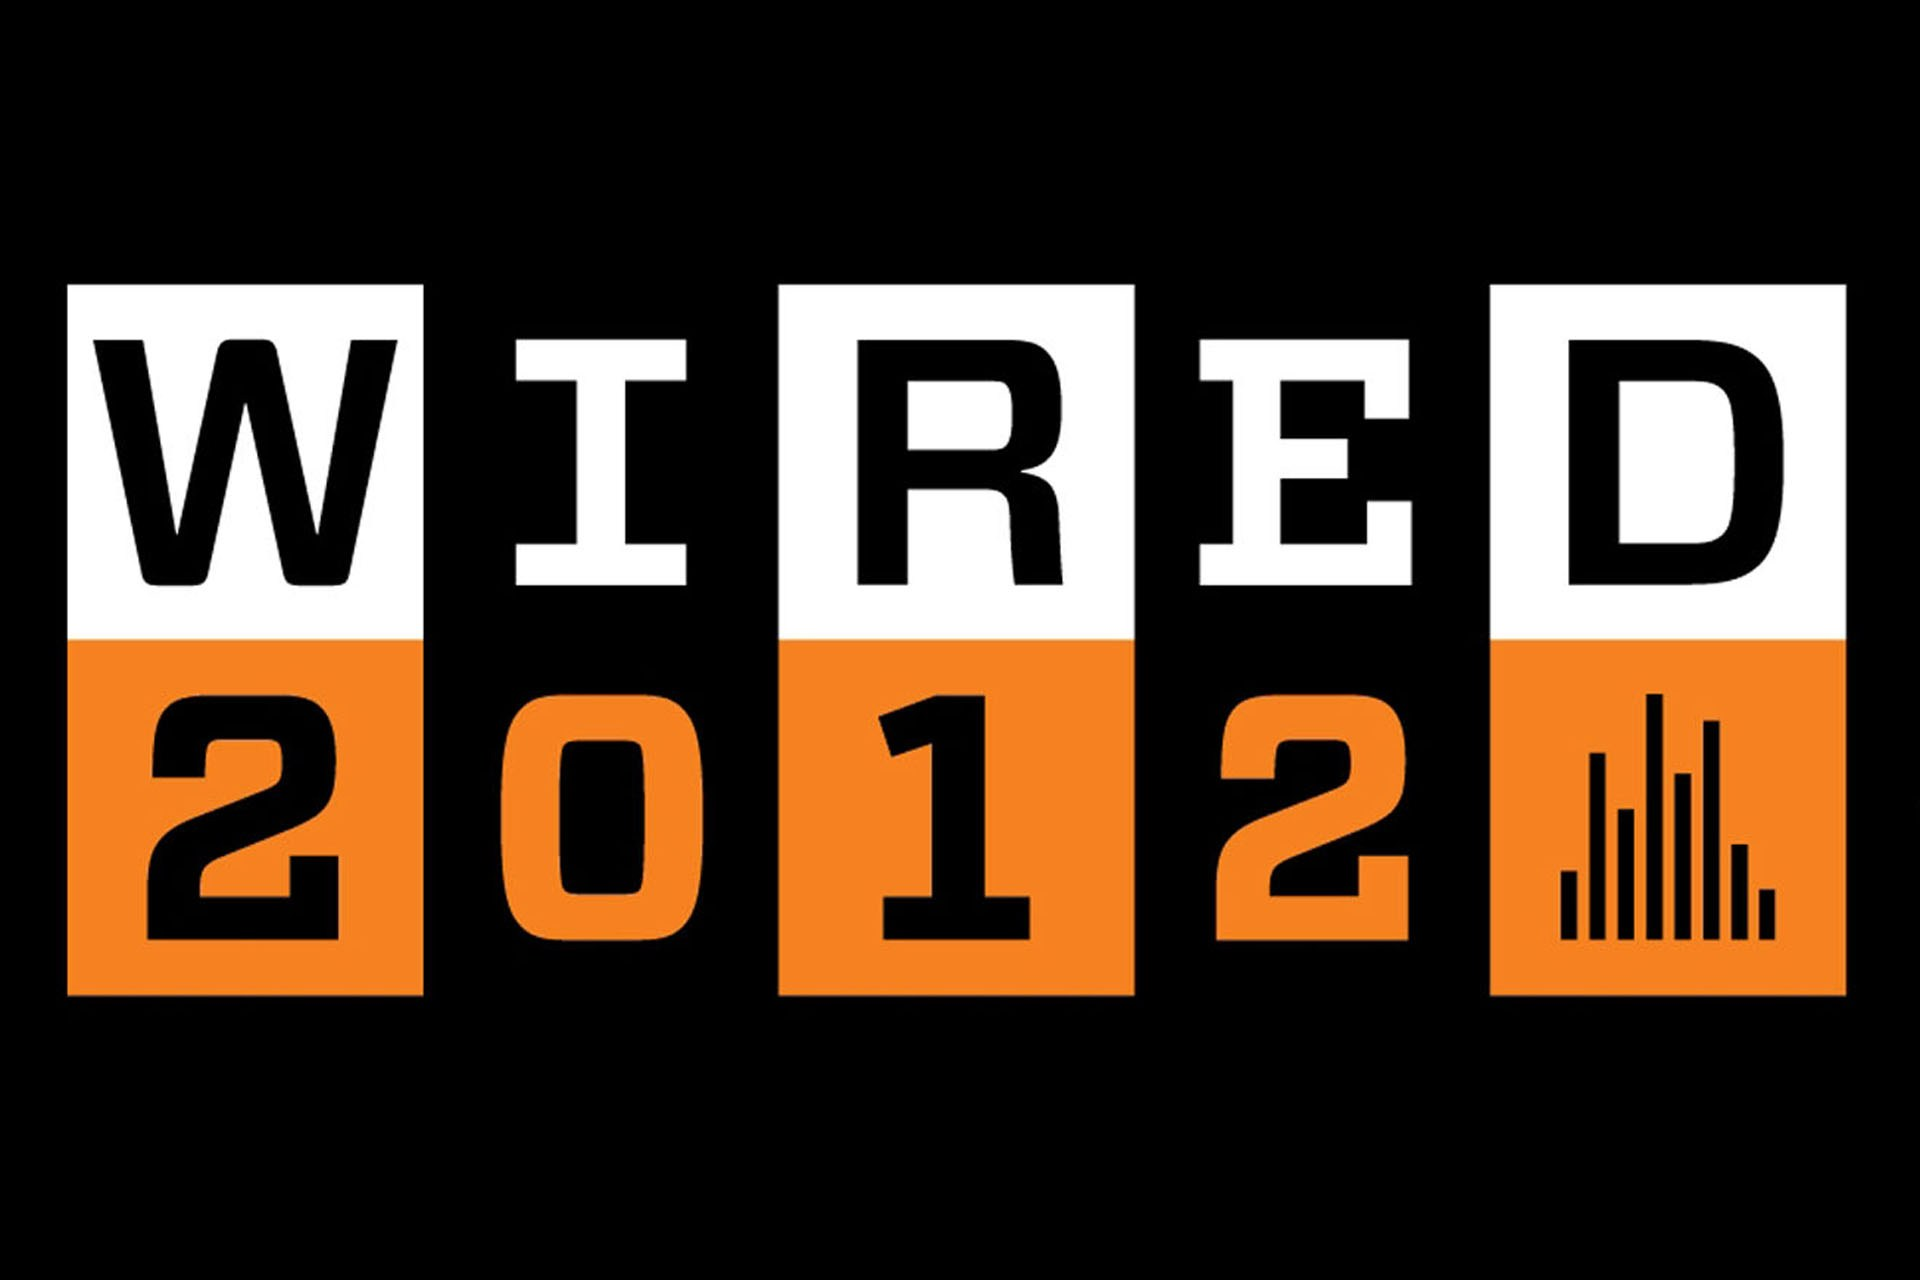 Wired 2012